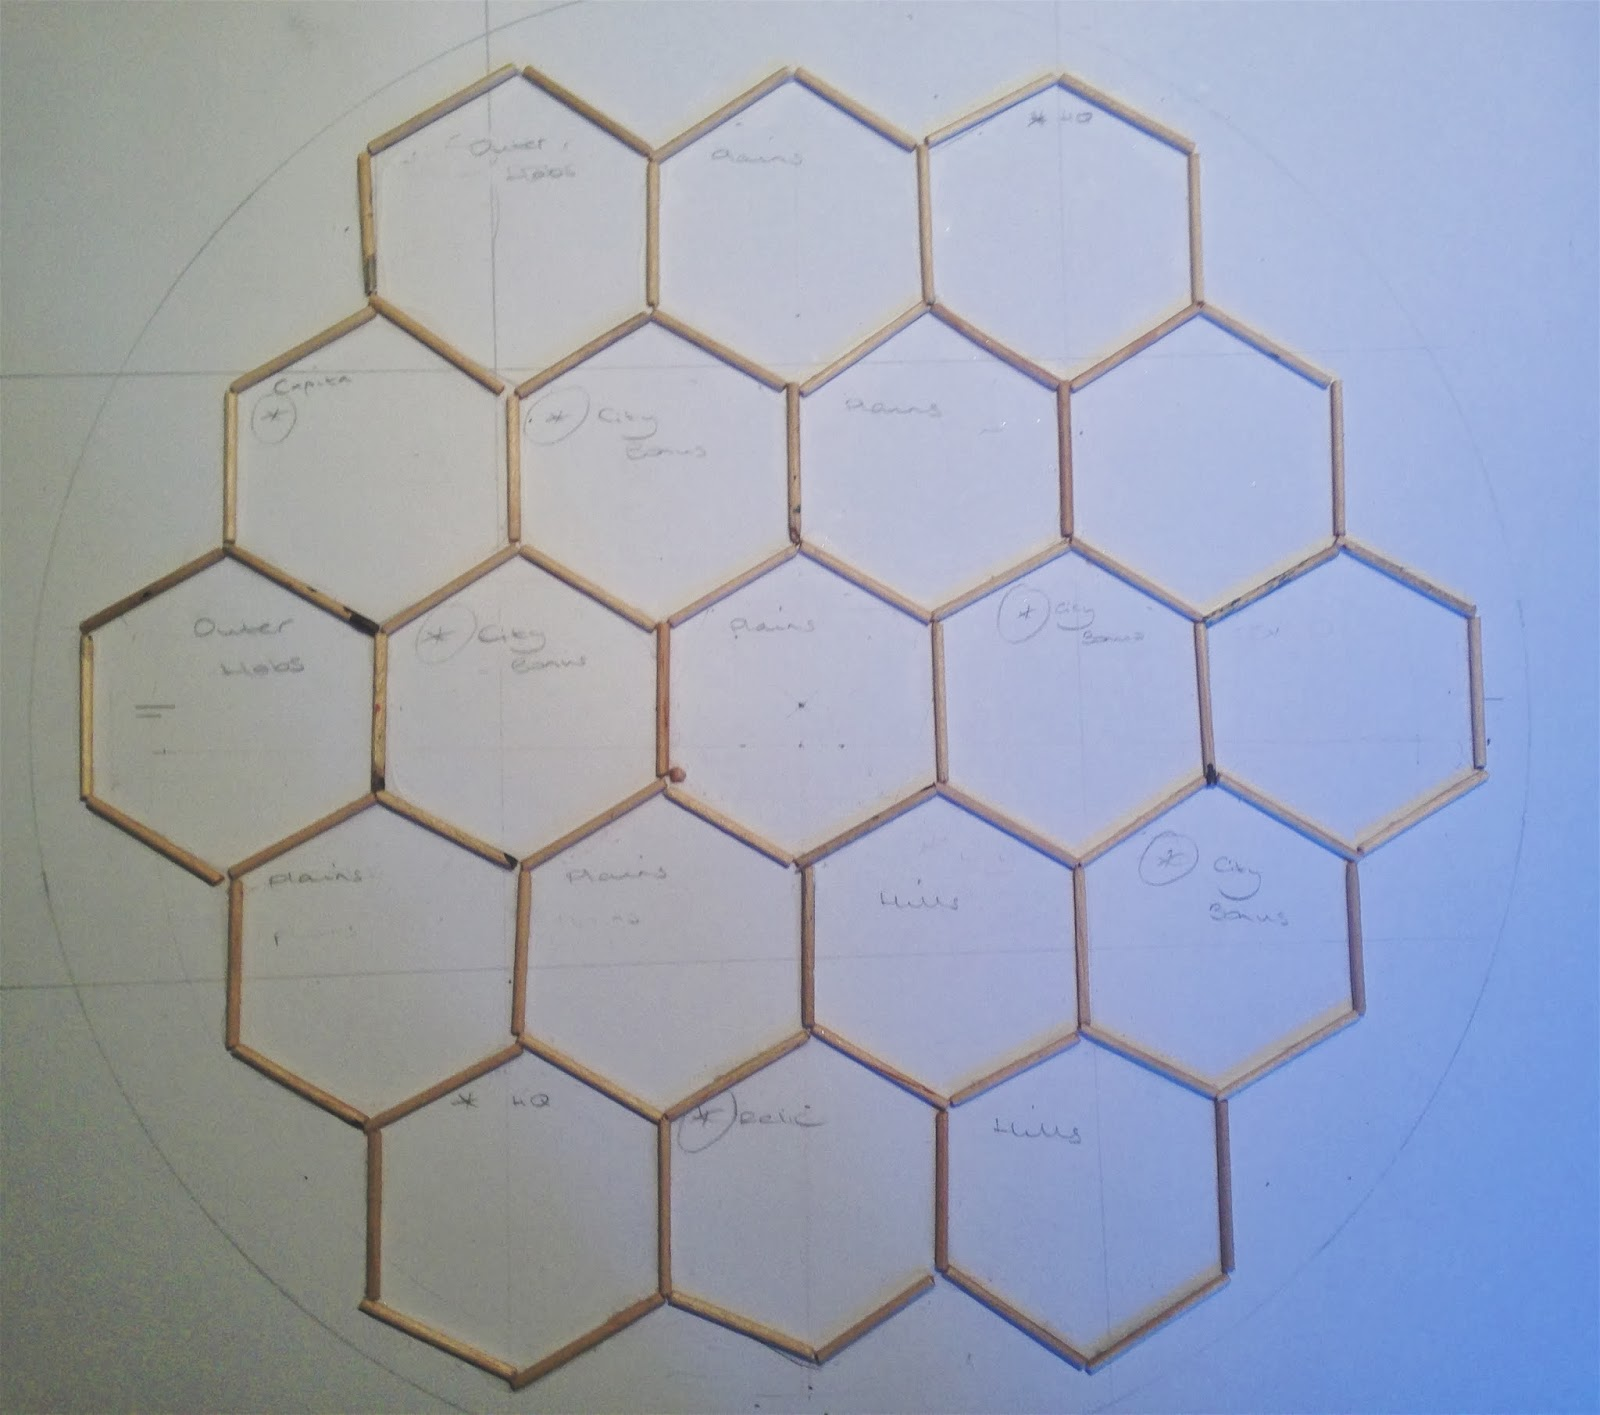 Create Your Own Campaign - Making A Campaign Hexagon Map